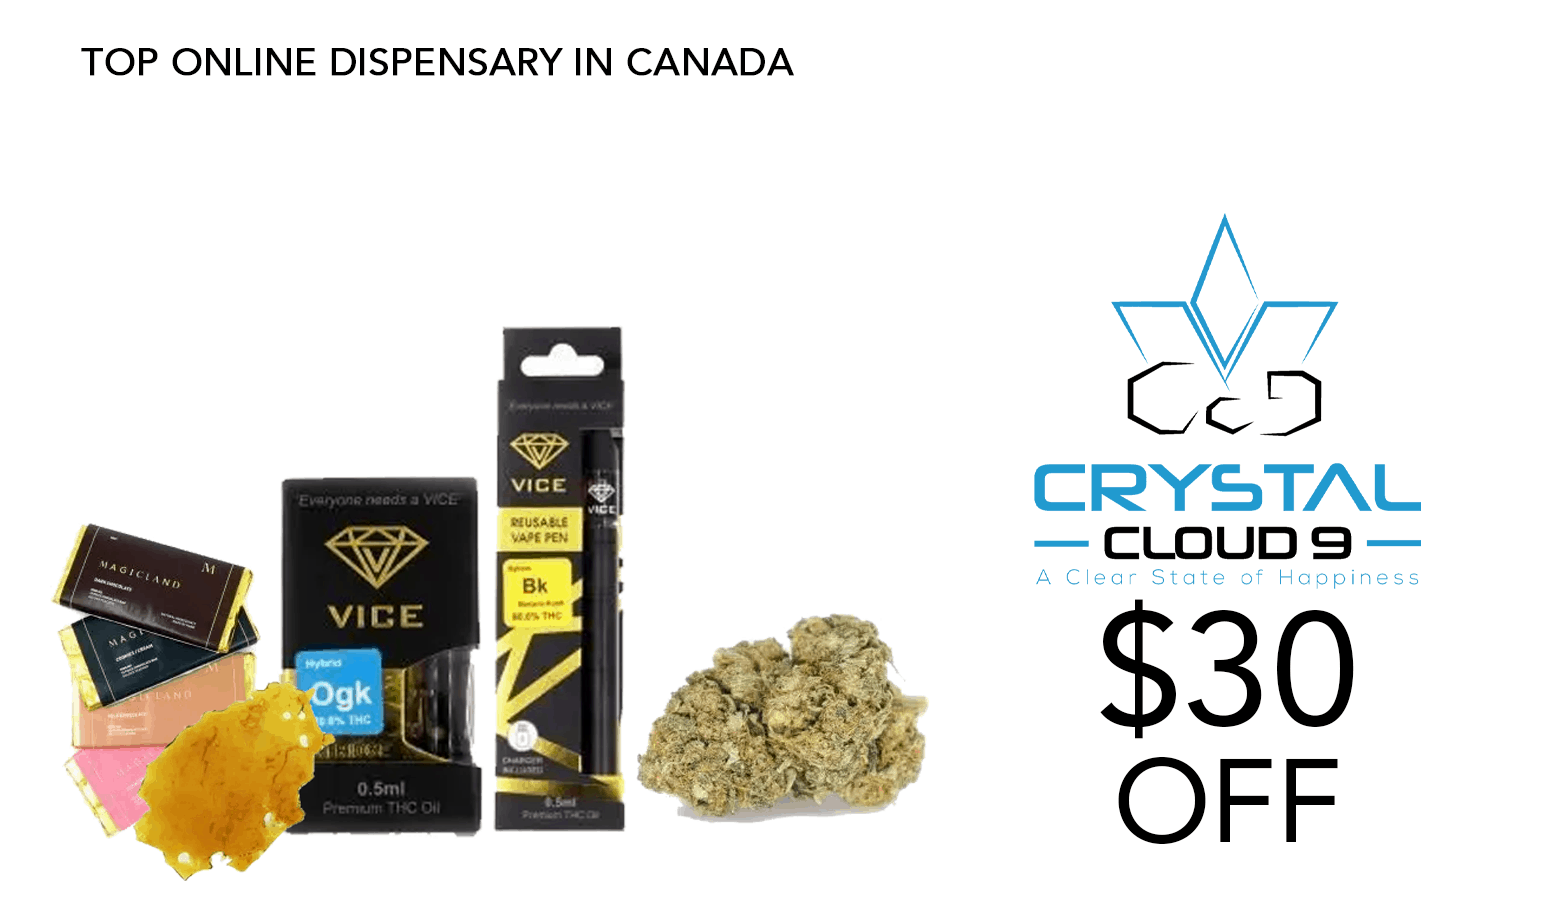 Crystal Cloud 9 CBD Coupon Code Offer Website